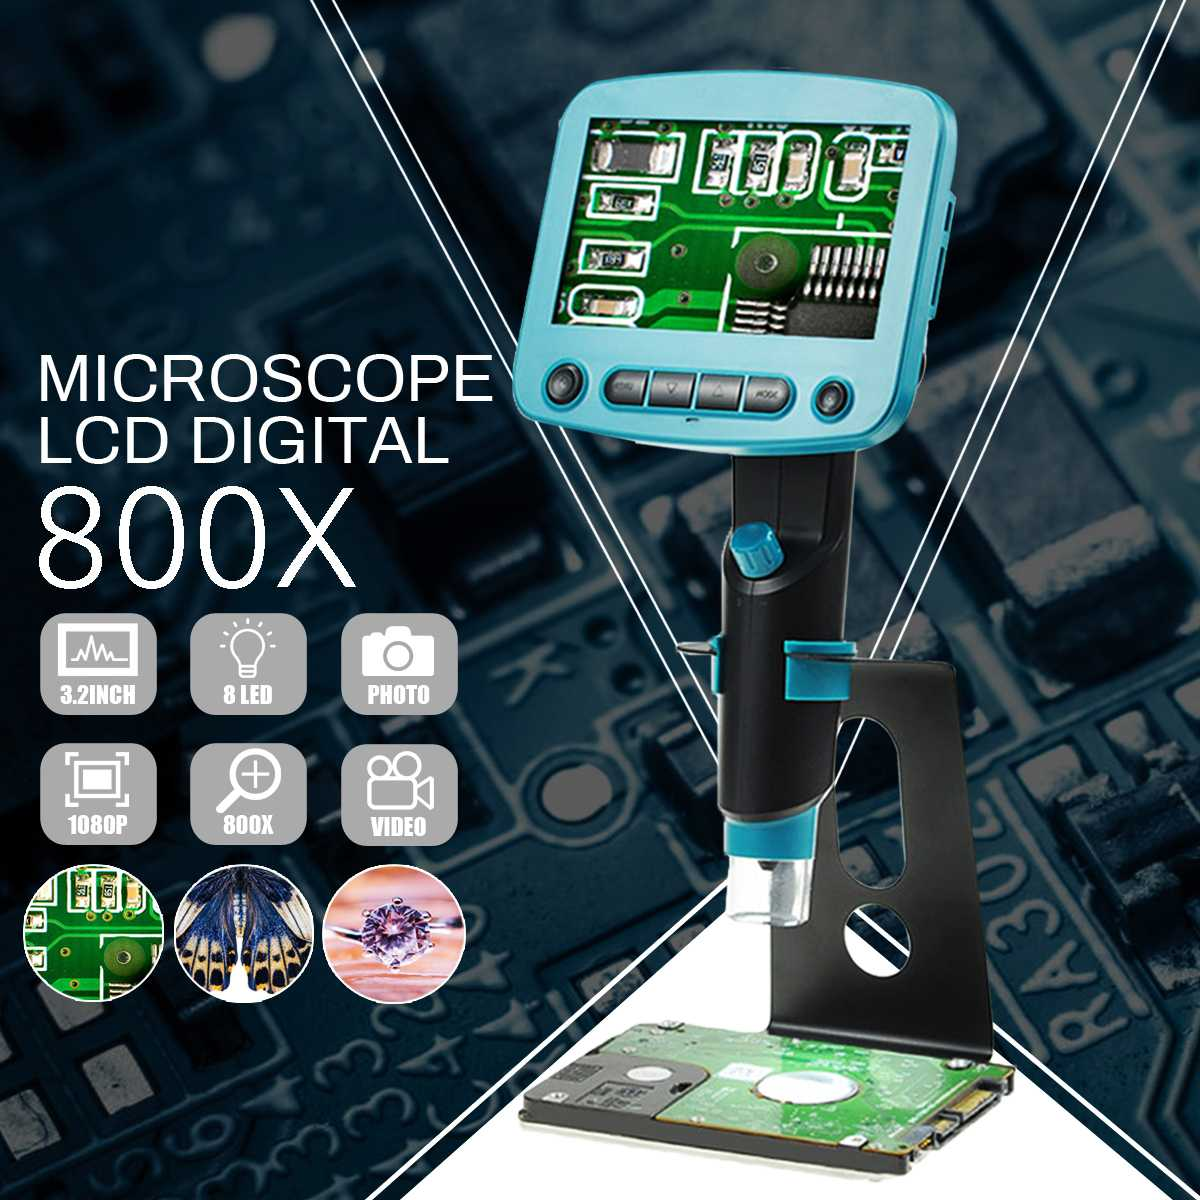 8LCD Display Digital Solder 800x 4.3 Inch Microscope Portable USB High Brightness 8 LEDs Electron Soldering Microscope8LCD Display Digital Solder 800x 4.3 Inch Microscope Portable USB High Brightness 8 LEDs Electron Soldering Microscope